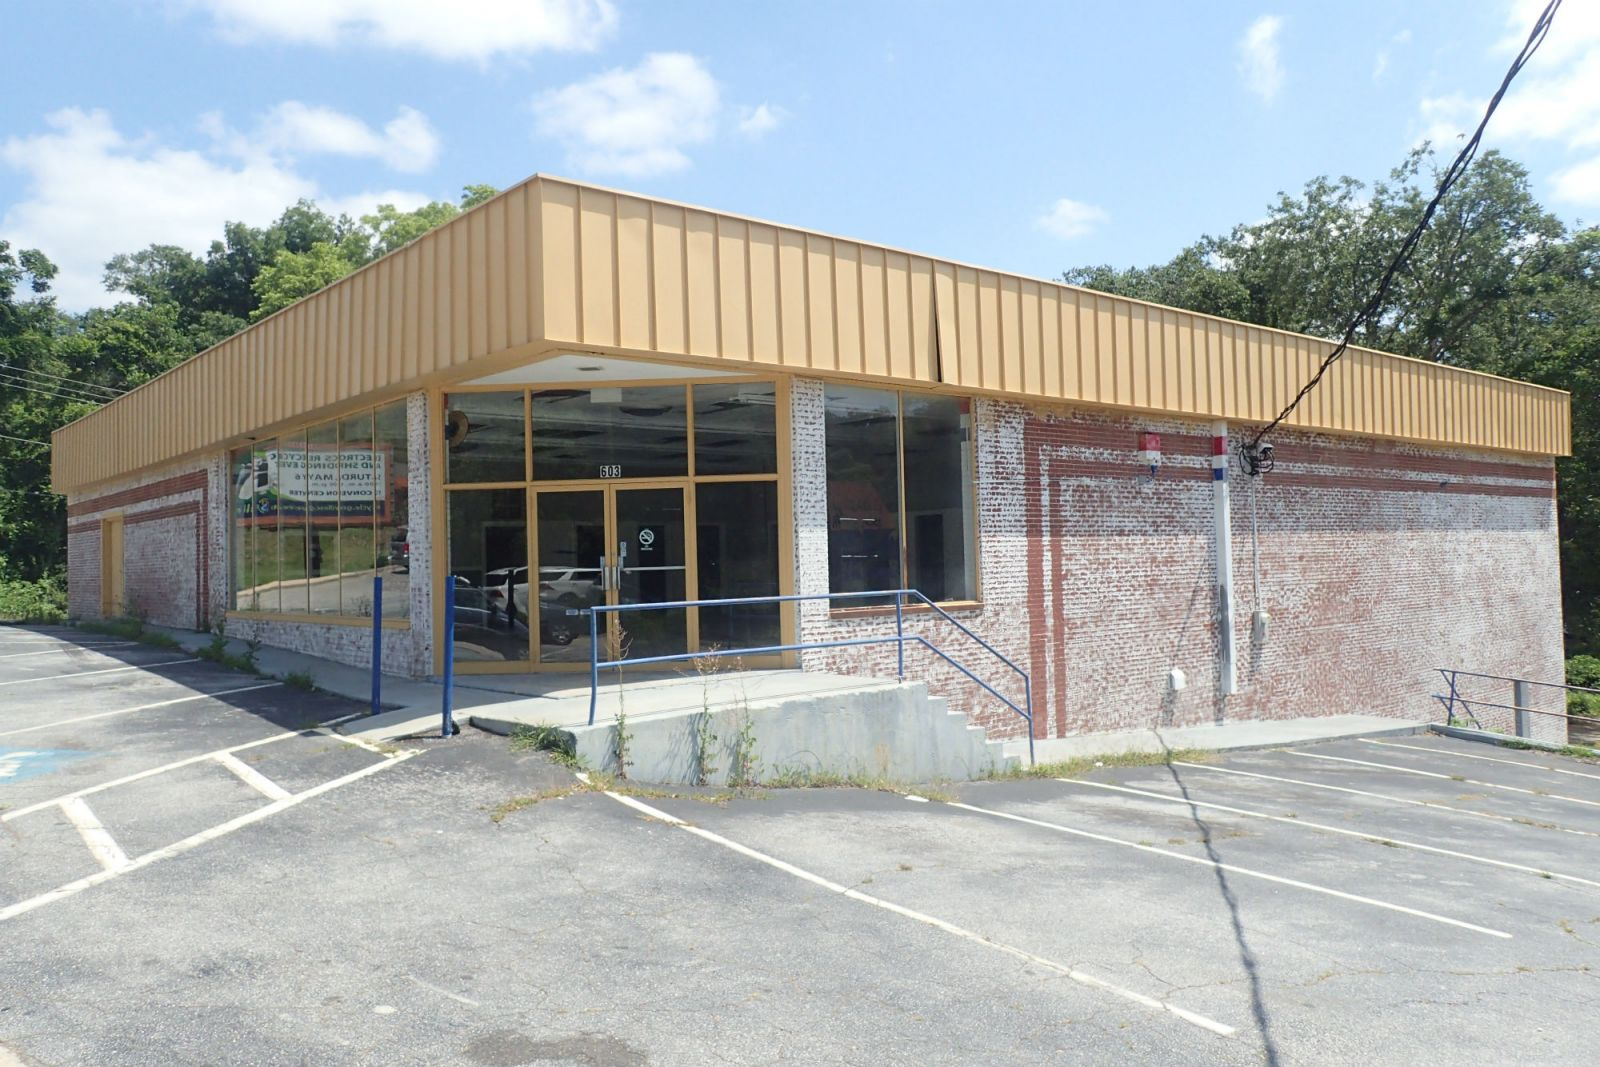 Retailer Half-Moon Outfitters has purchased this building at 603 E. Stone Ave. in Greenville. (Photo/Provided)